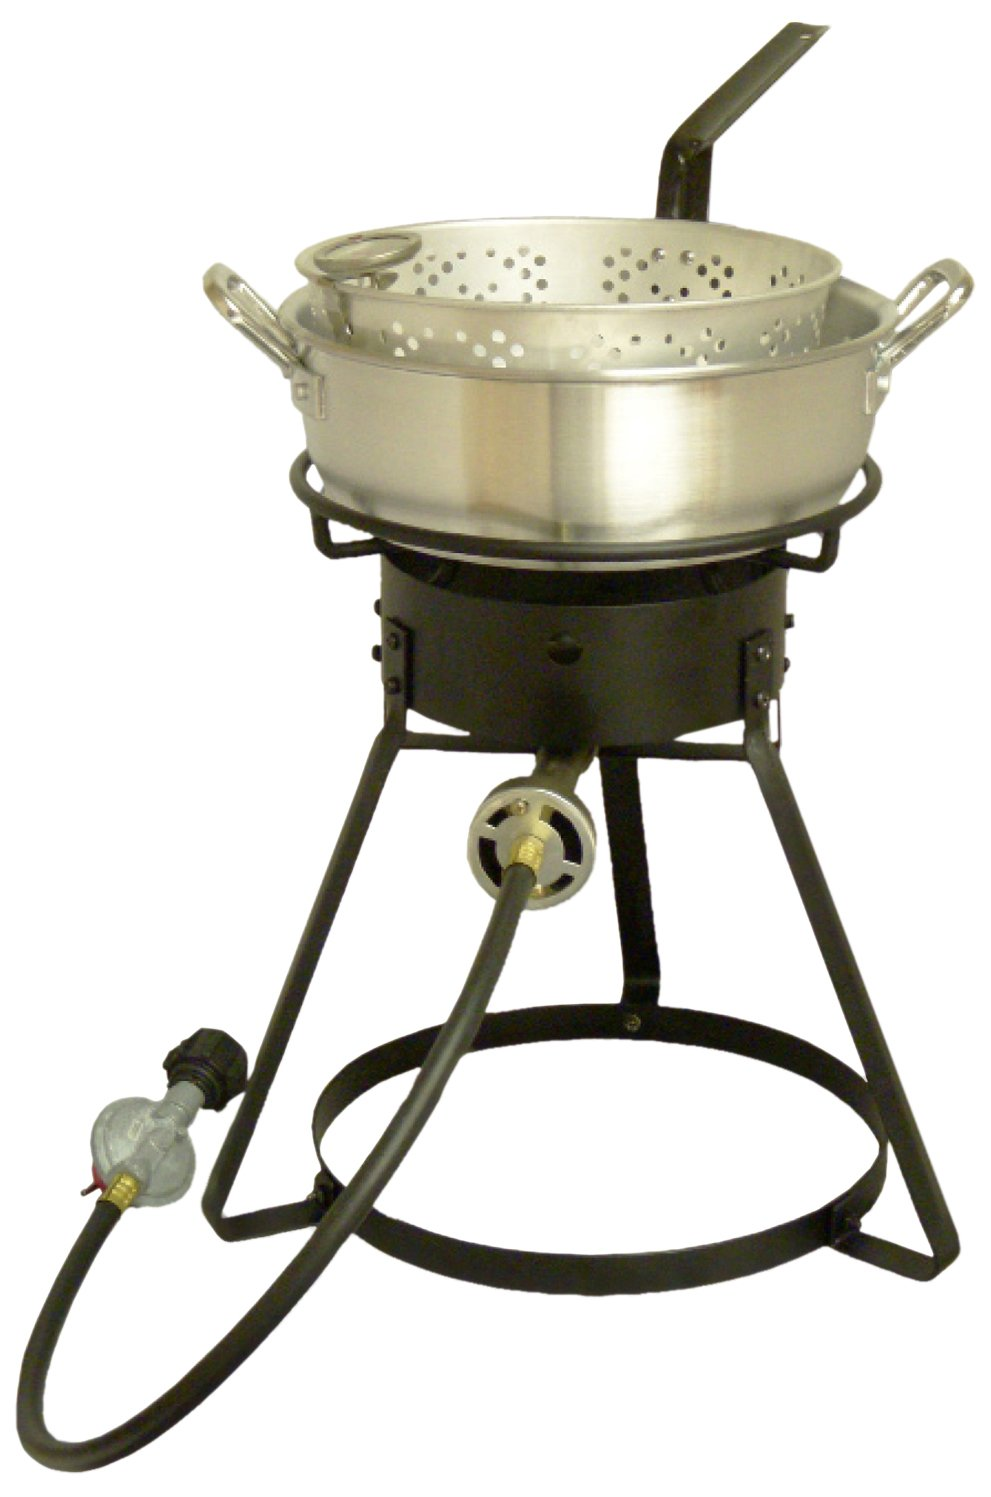 King Kooker 1642 16-Inch Bolt Together Outdoor Propane Cooker Package with Aluminum Fry Pan by King Kooker